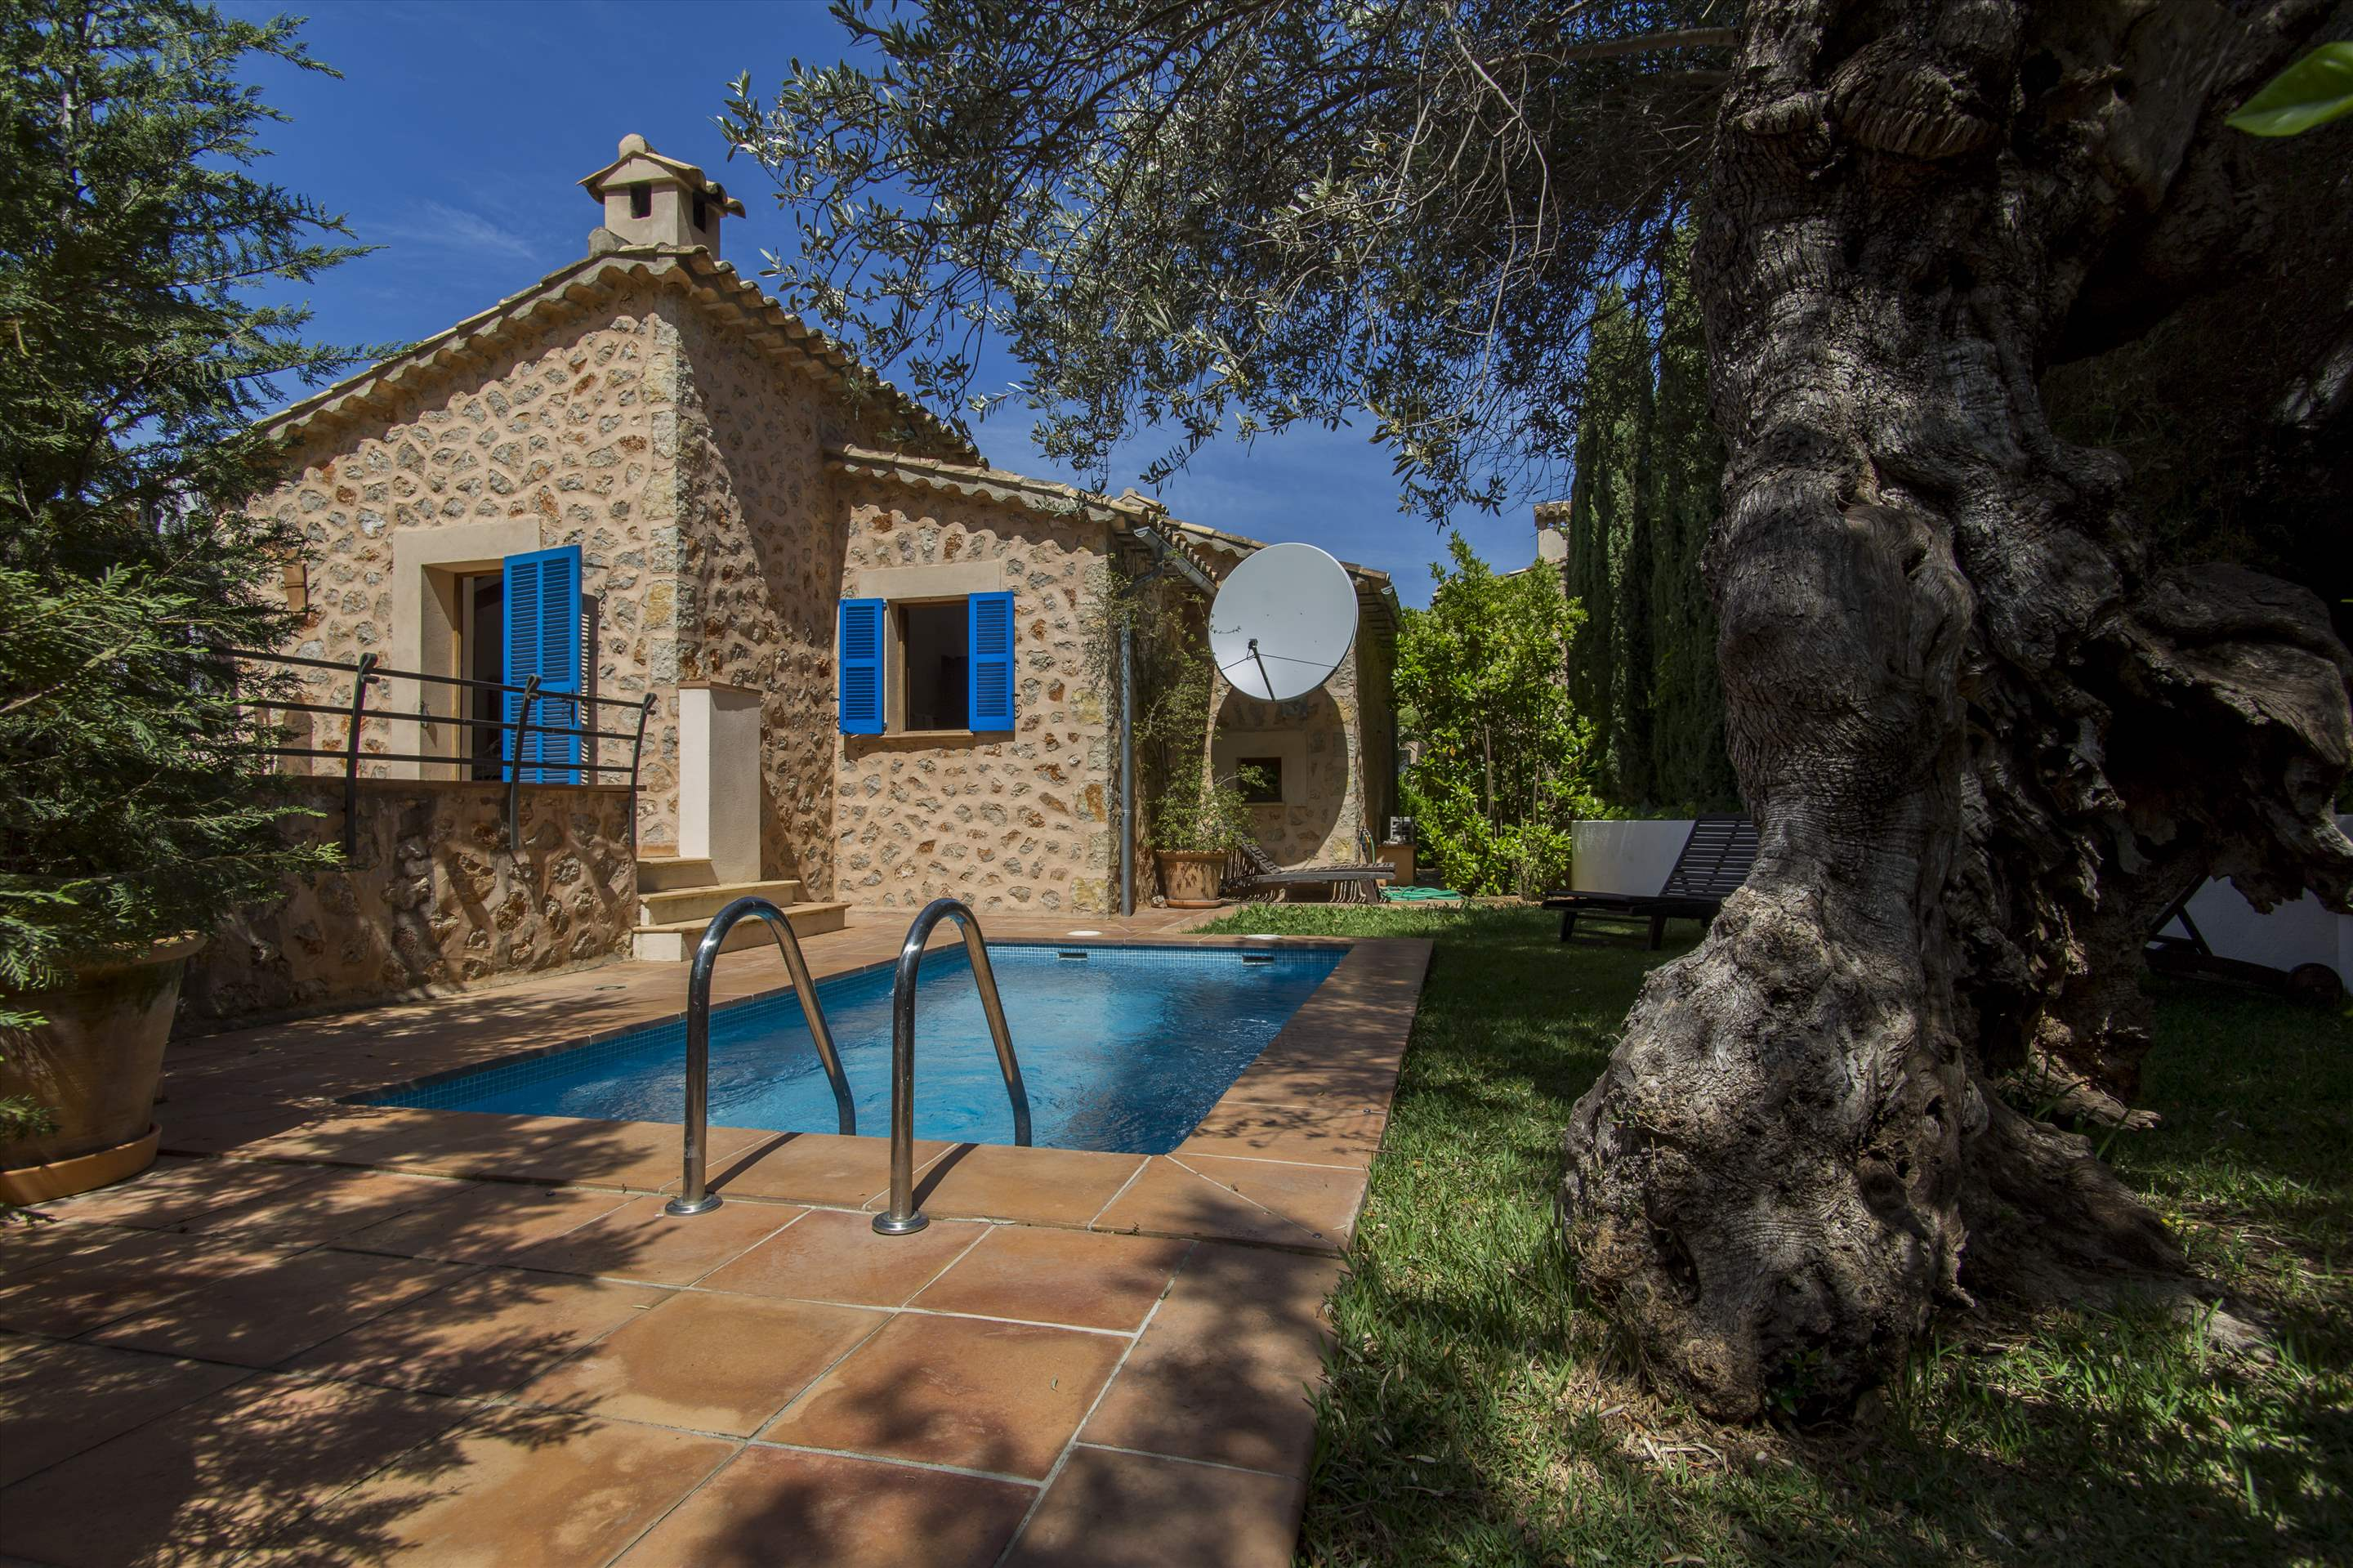 Can Monticel, 3 bedroom villa in Soller & Deia, Majorca Photo #1